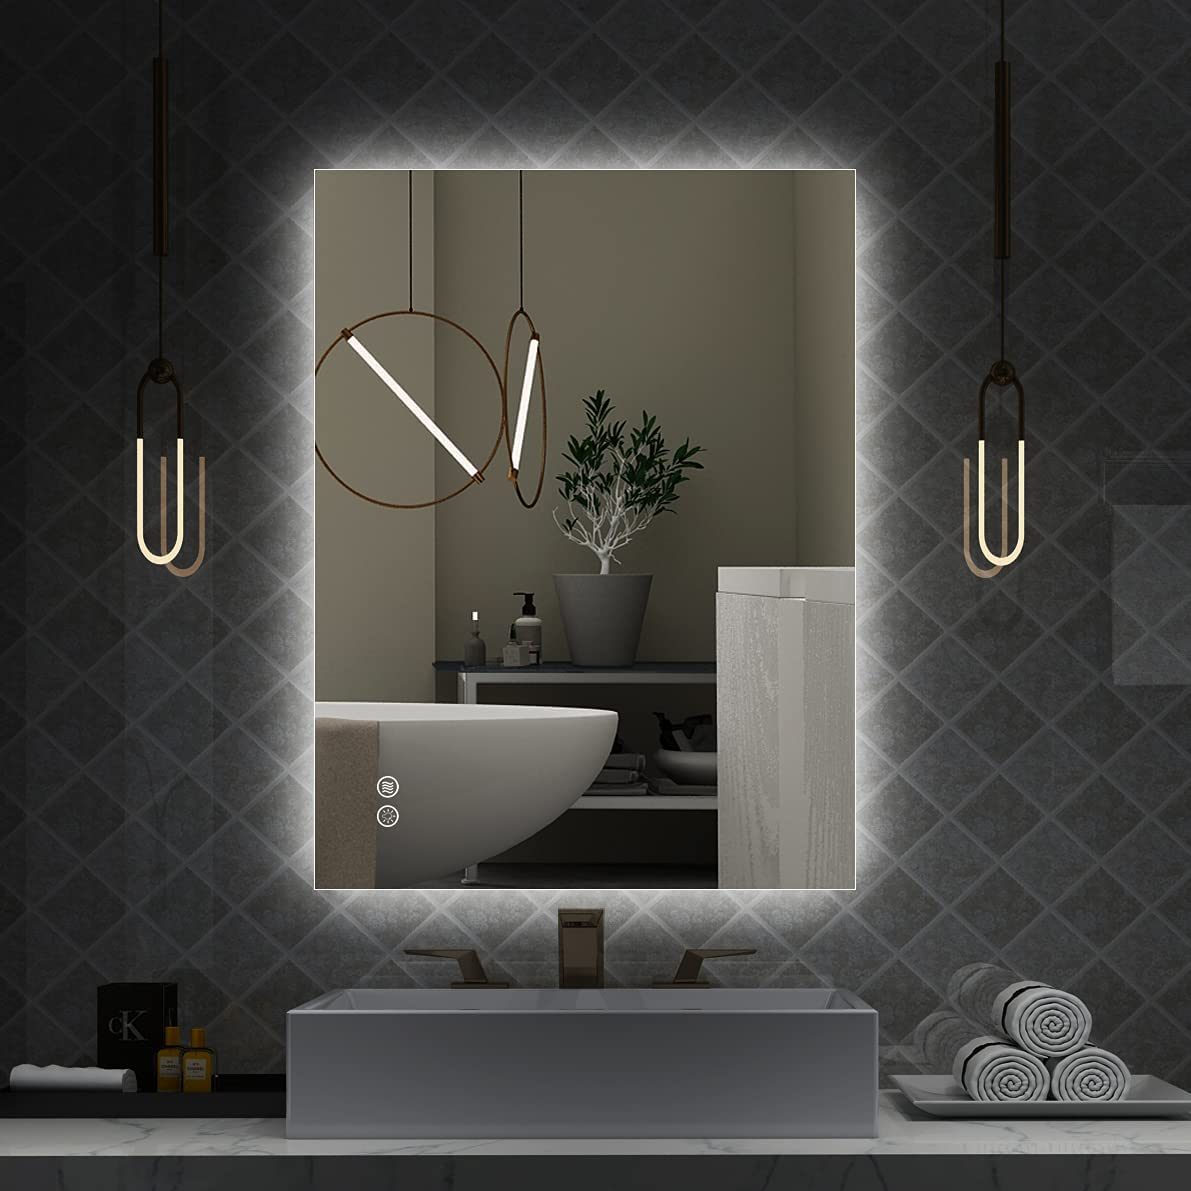 Buy Istripmf Led Bathroom Mirror 24 X 32 Inch Anti Fog Mirror Lights With Lights For Wall Dimmable Brightness Memory Etl Listed And Support Wall Switch Horizontal Vertical Online In Germany B08h4g5wbb